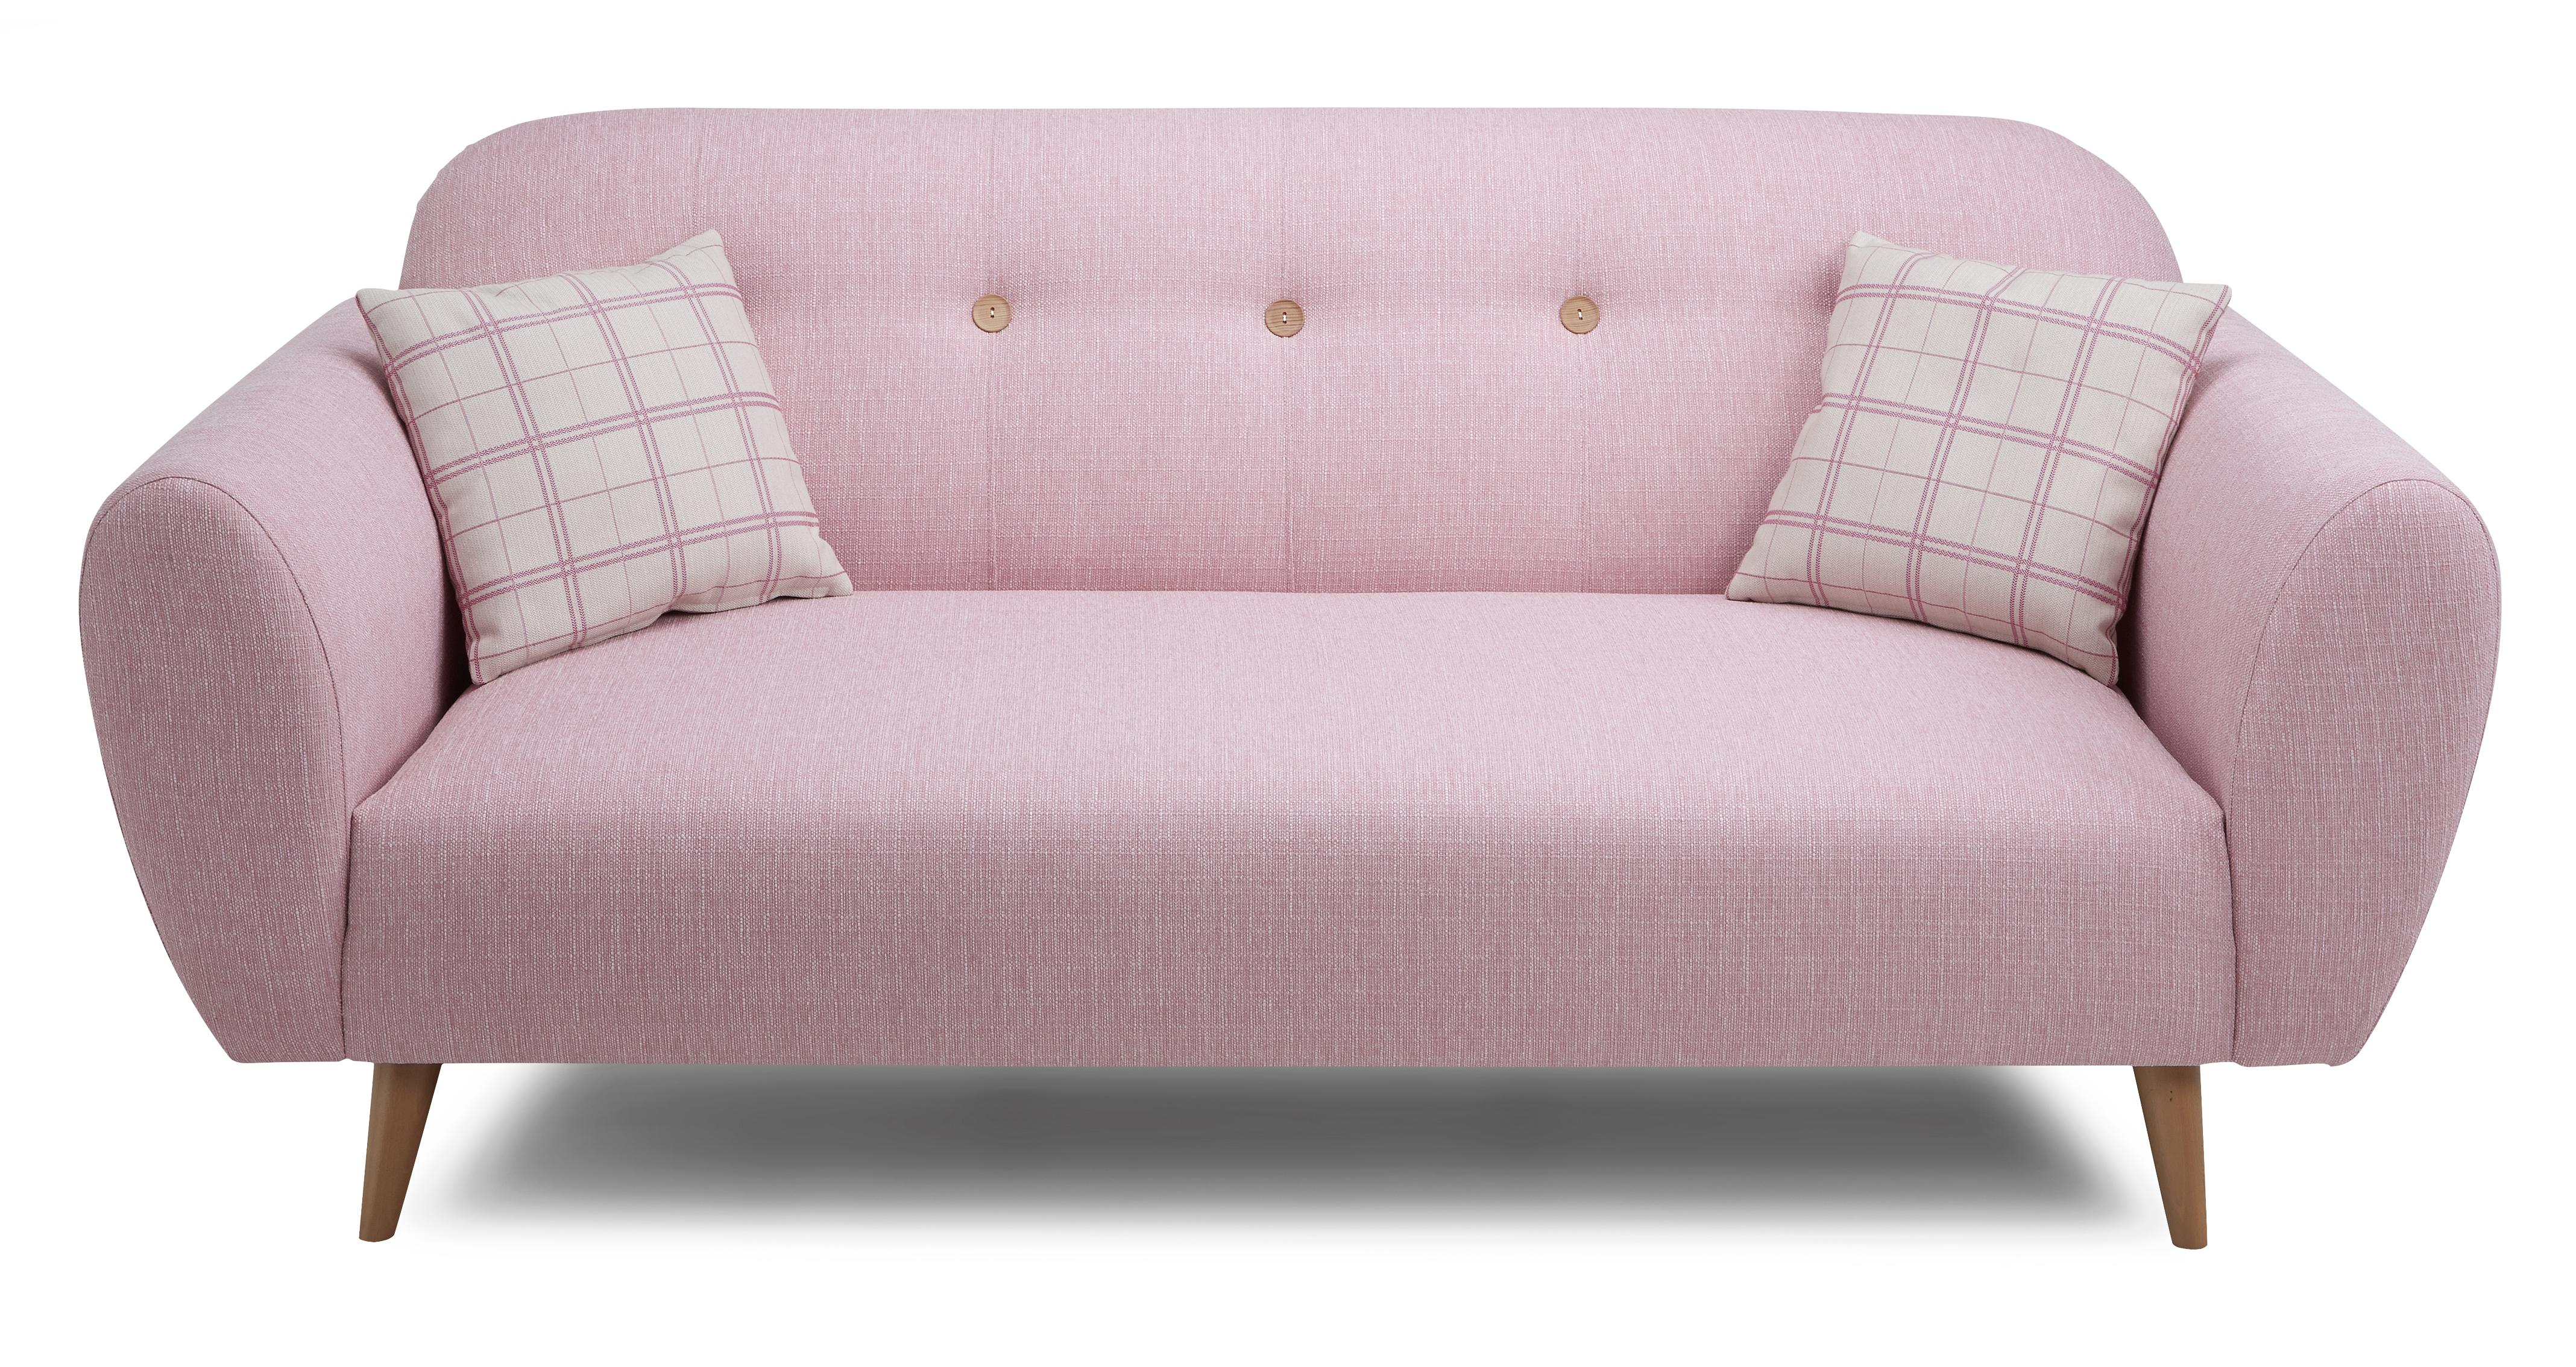 Betsy 3 Seater Sofa Dfs